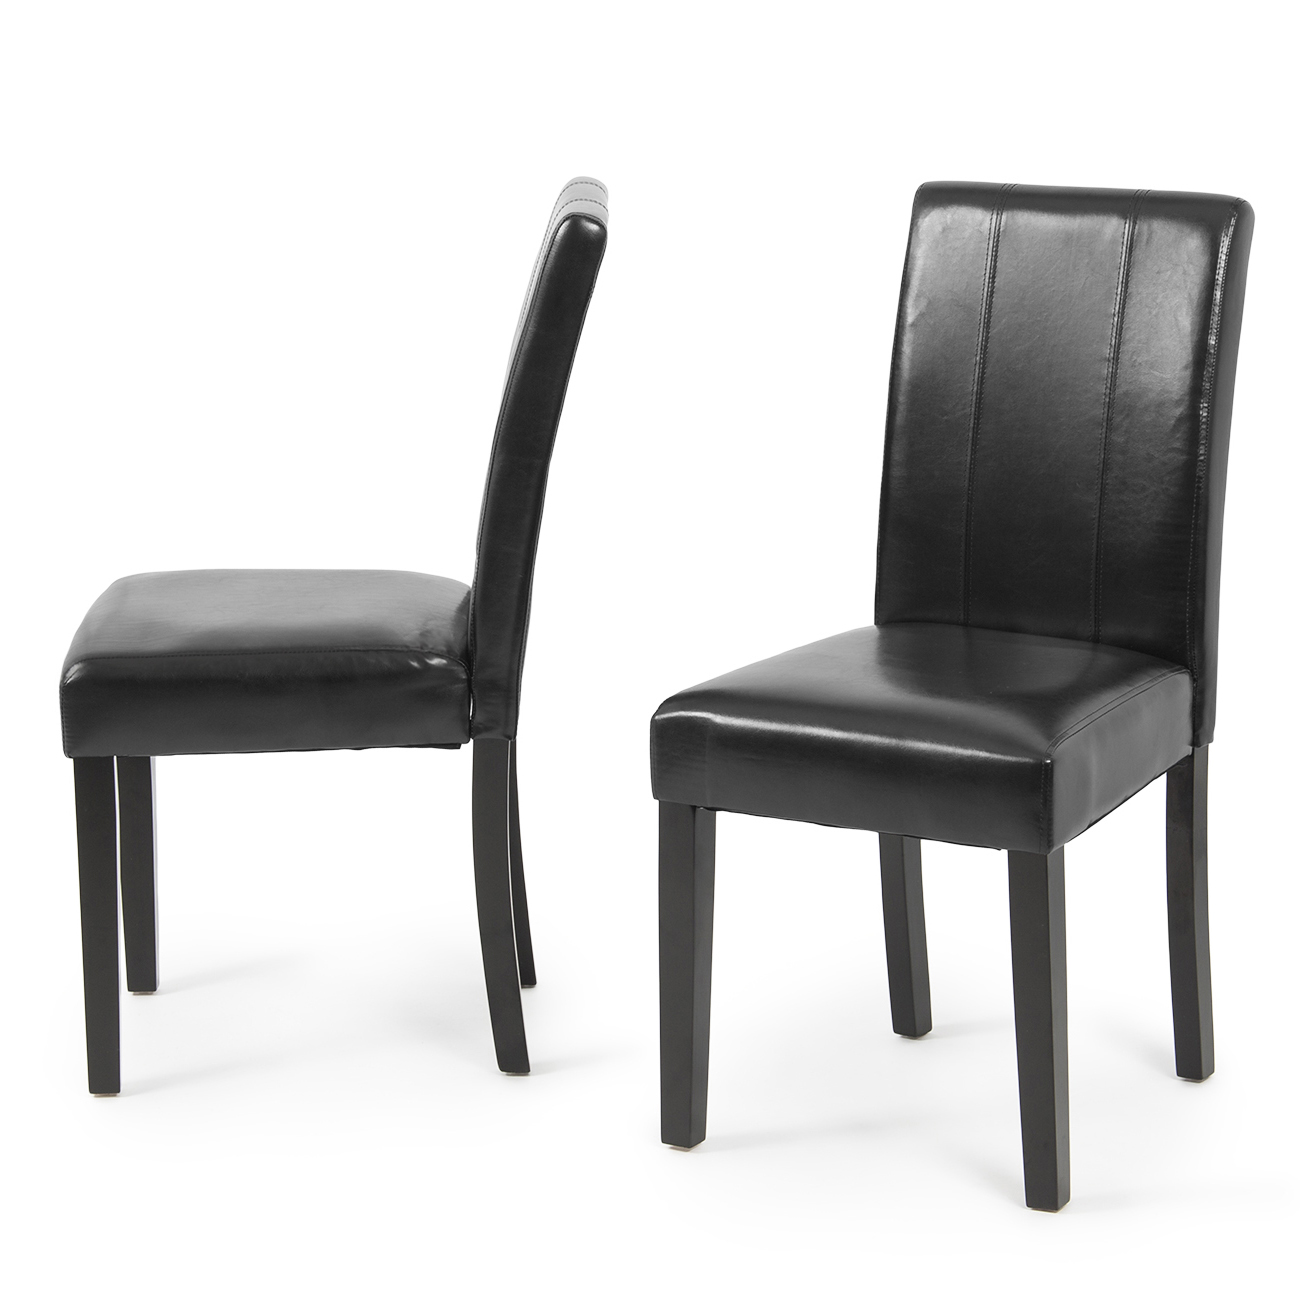 Set of 2 Elegant Modern Design Leather Parsons Dining